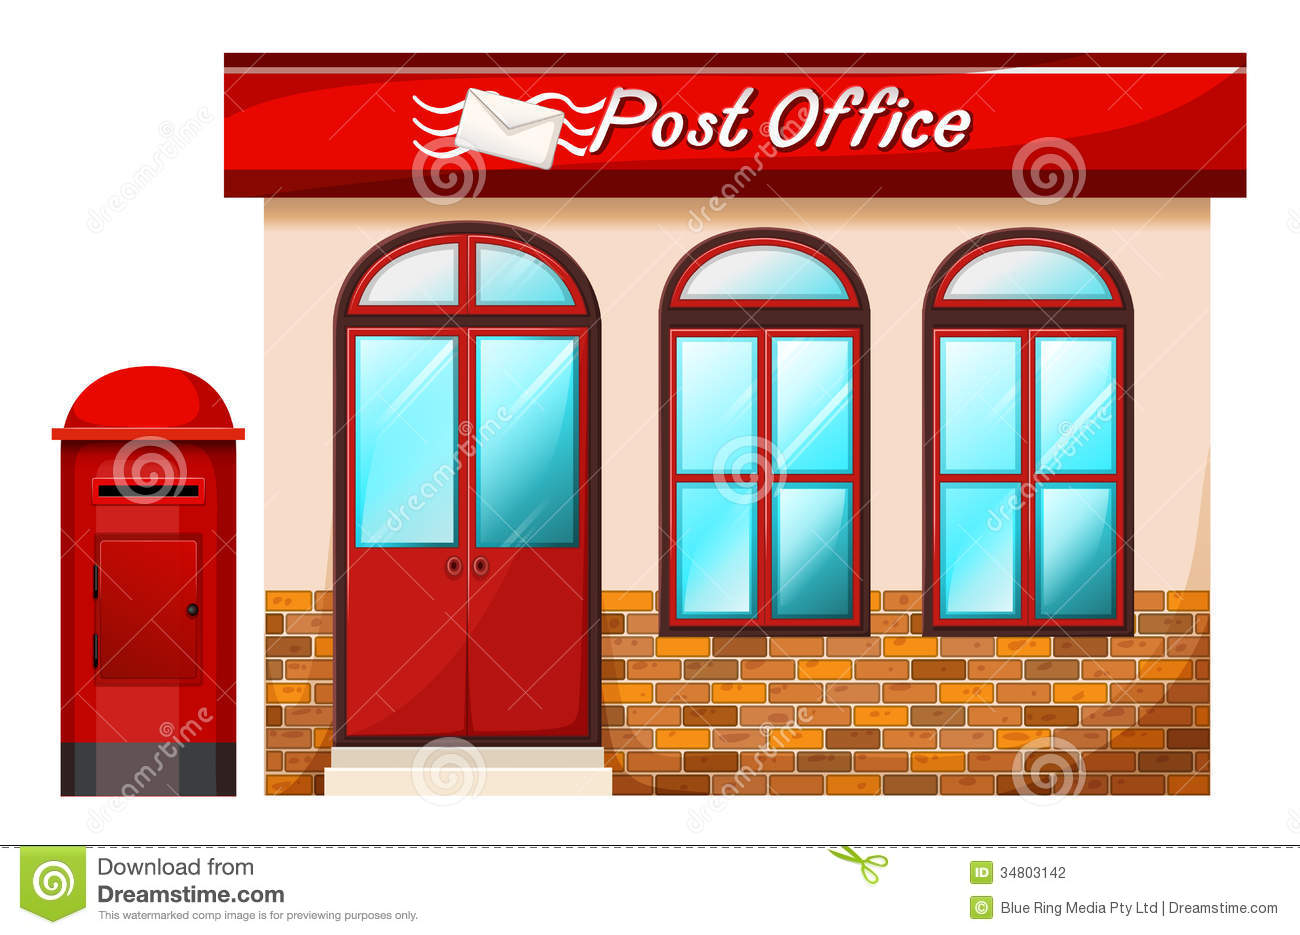 Office clipart office building Clipart Office Clipart Building collection